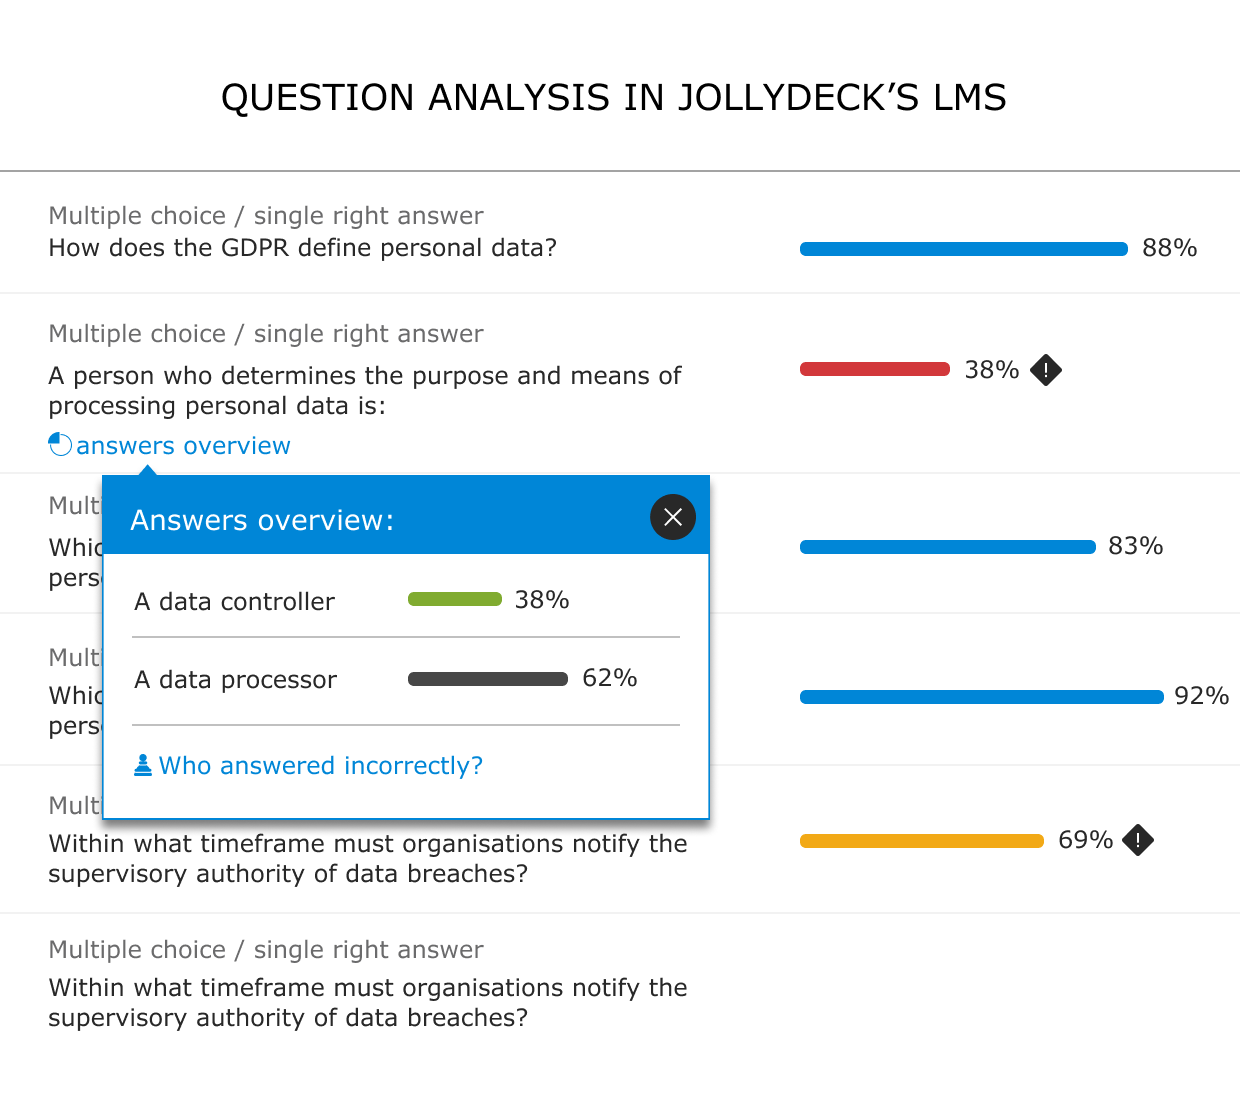 Learning analytics used to identify knowledge gaps in JollyDeck's LMS